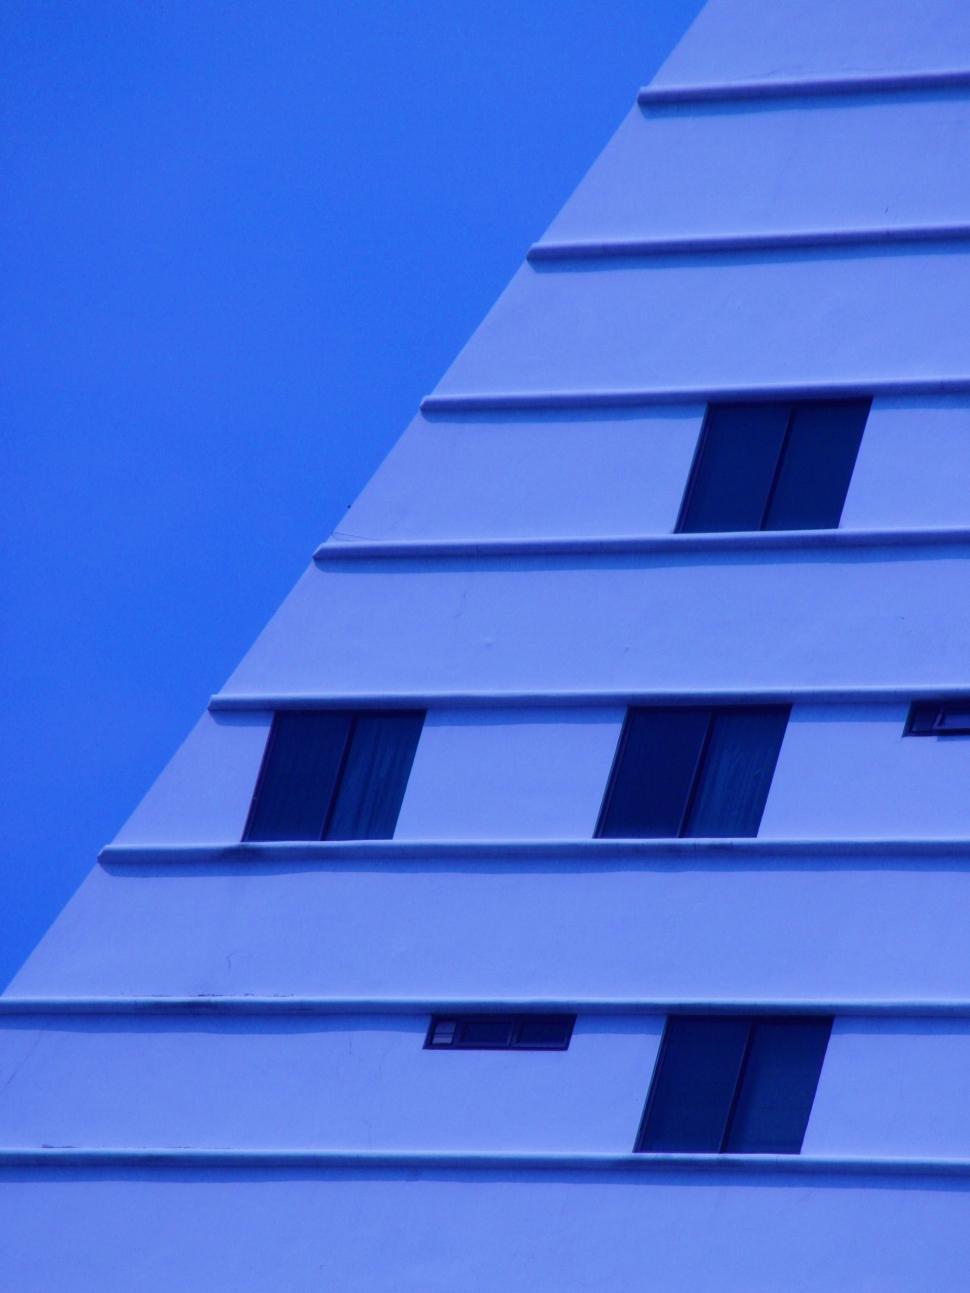 Download Free Stock HD Photo of Abstract Slanted Building Online